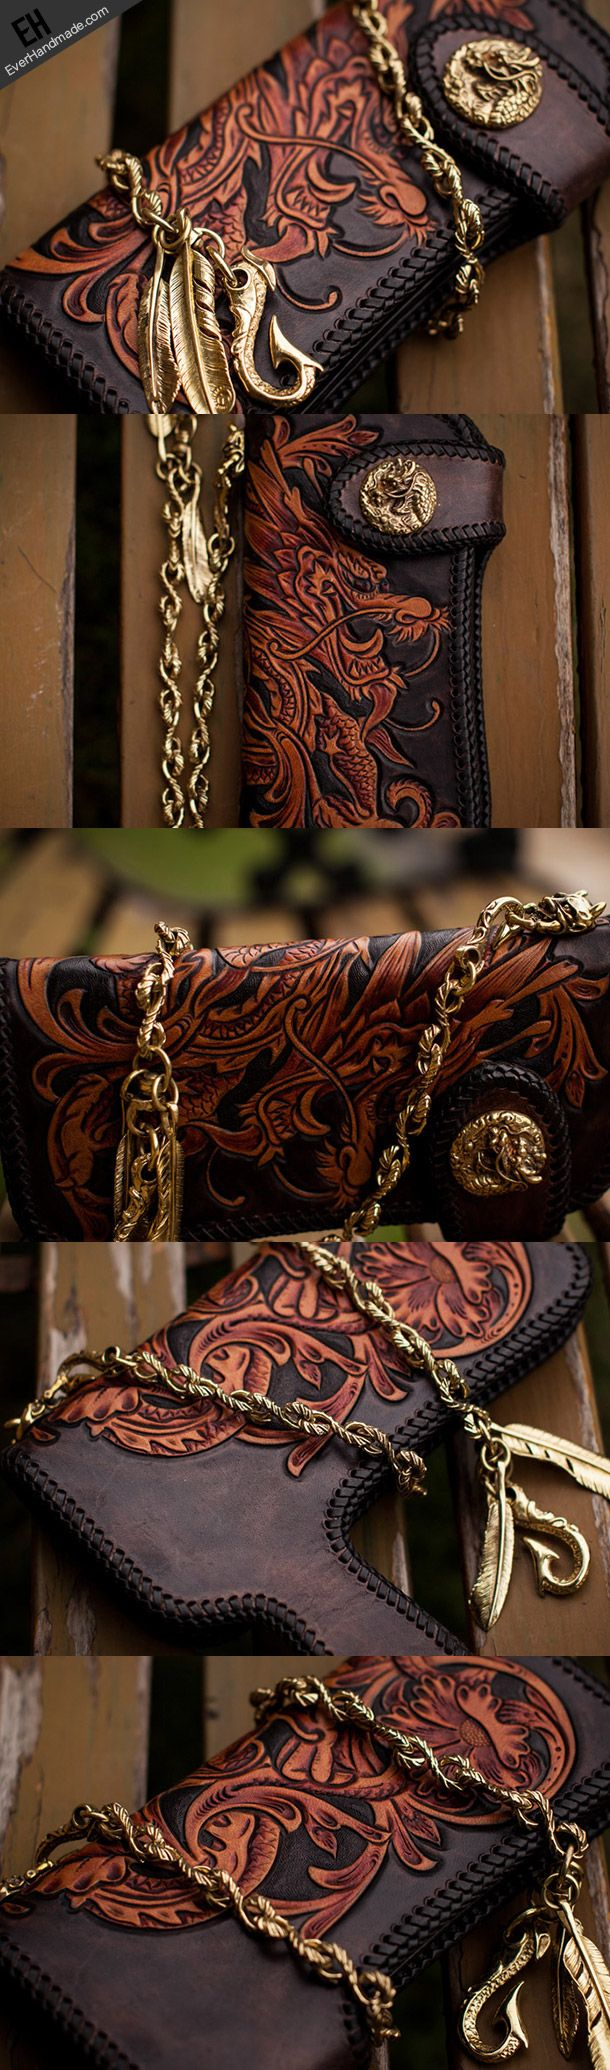 32 Best Hand Made Stuff I Like Images On Pinterest Leather Craft Business Card Holder Circuit Board Geekery Mens Stained Glass Handmade Black Brown Floral Chinese Dragon Carved Biker Wallet Long For Men